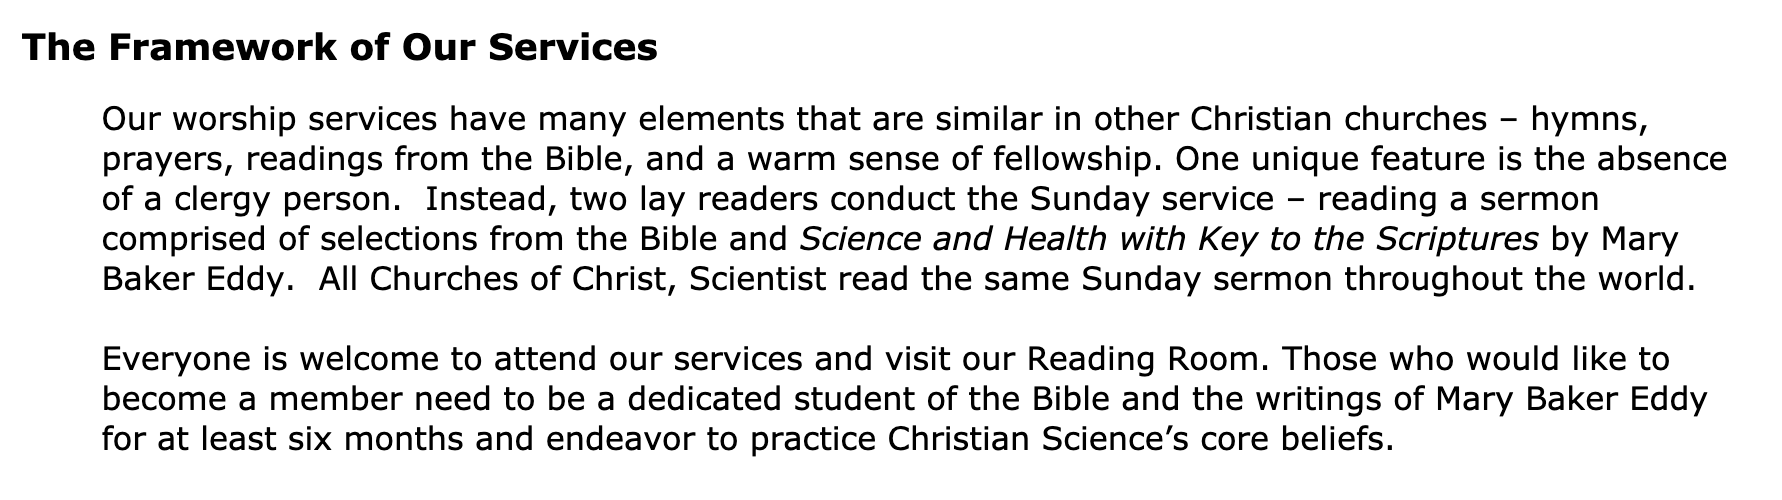 The First Church of Christ, Scientist, Naperville membership requirements